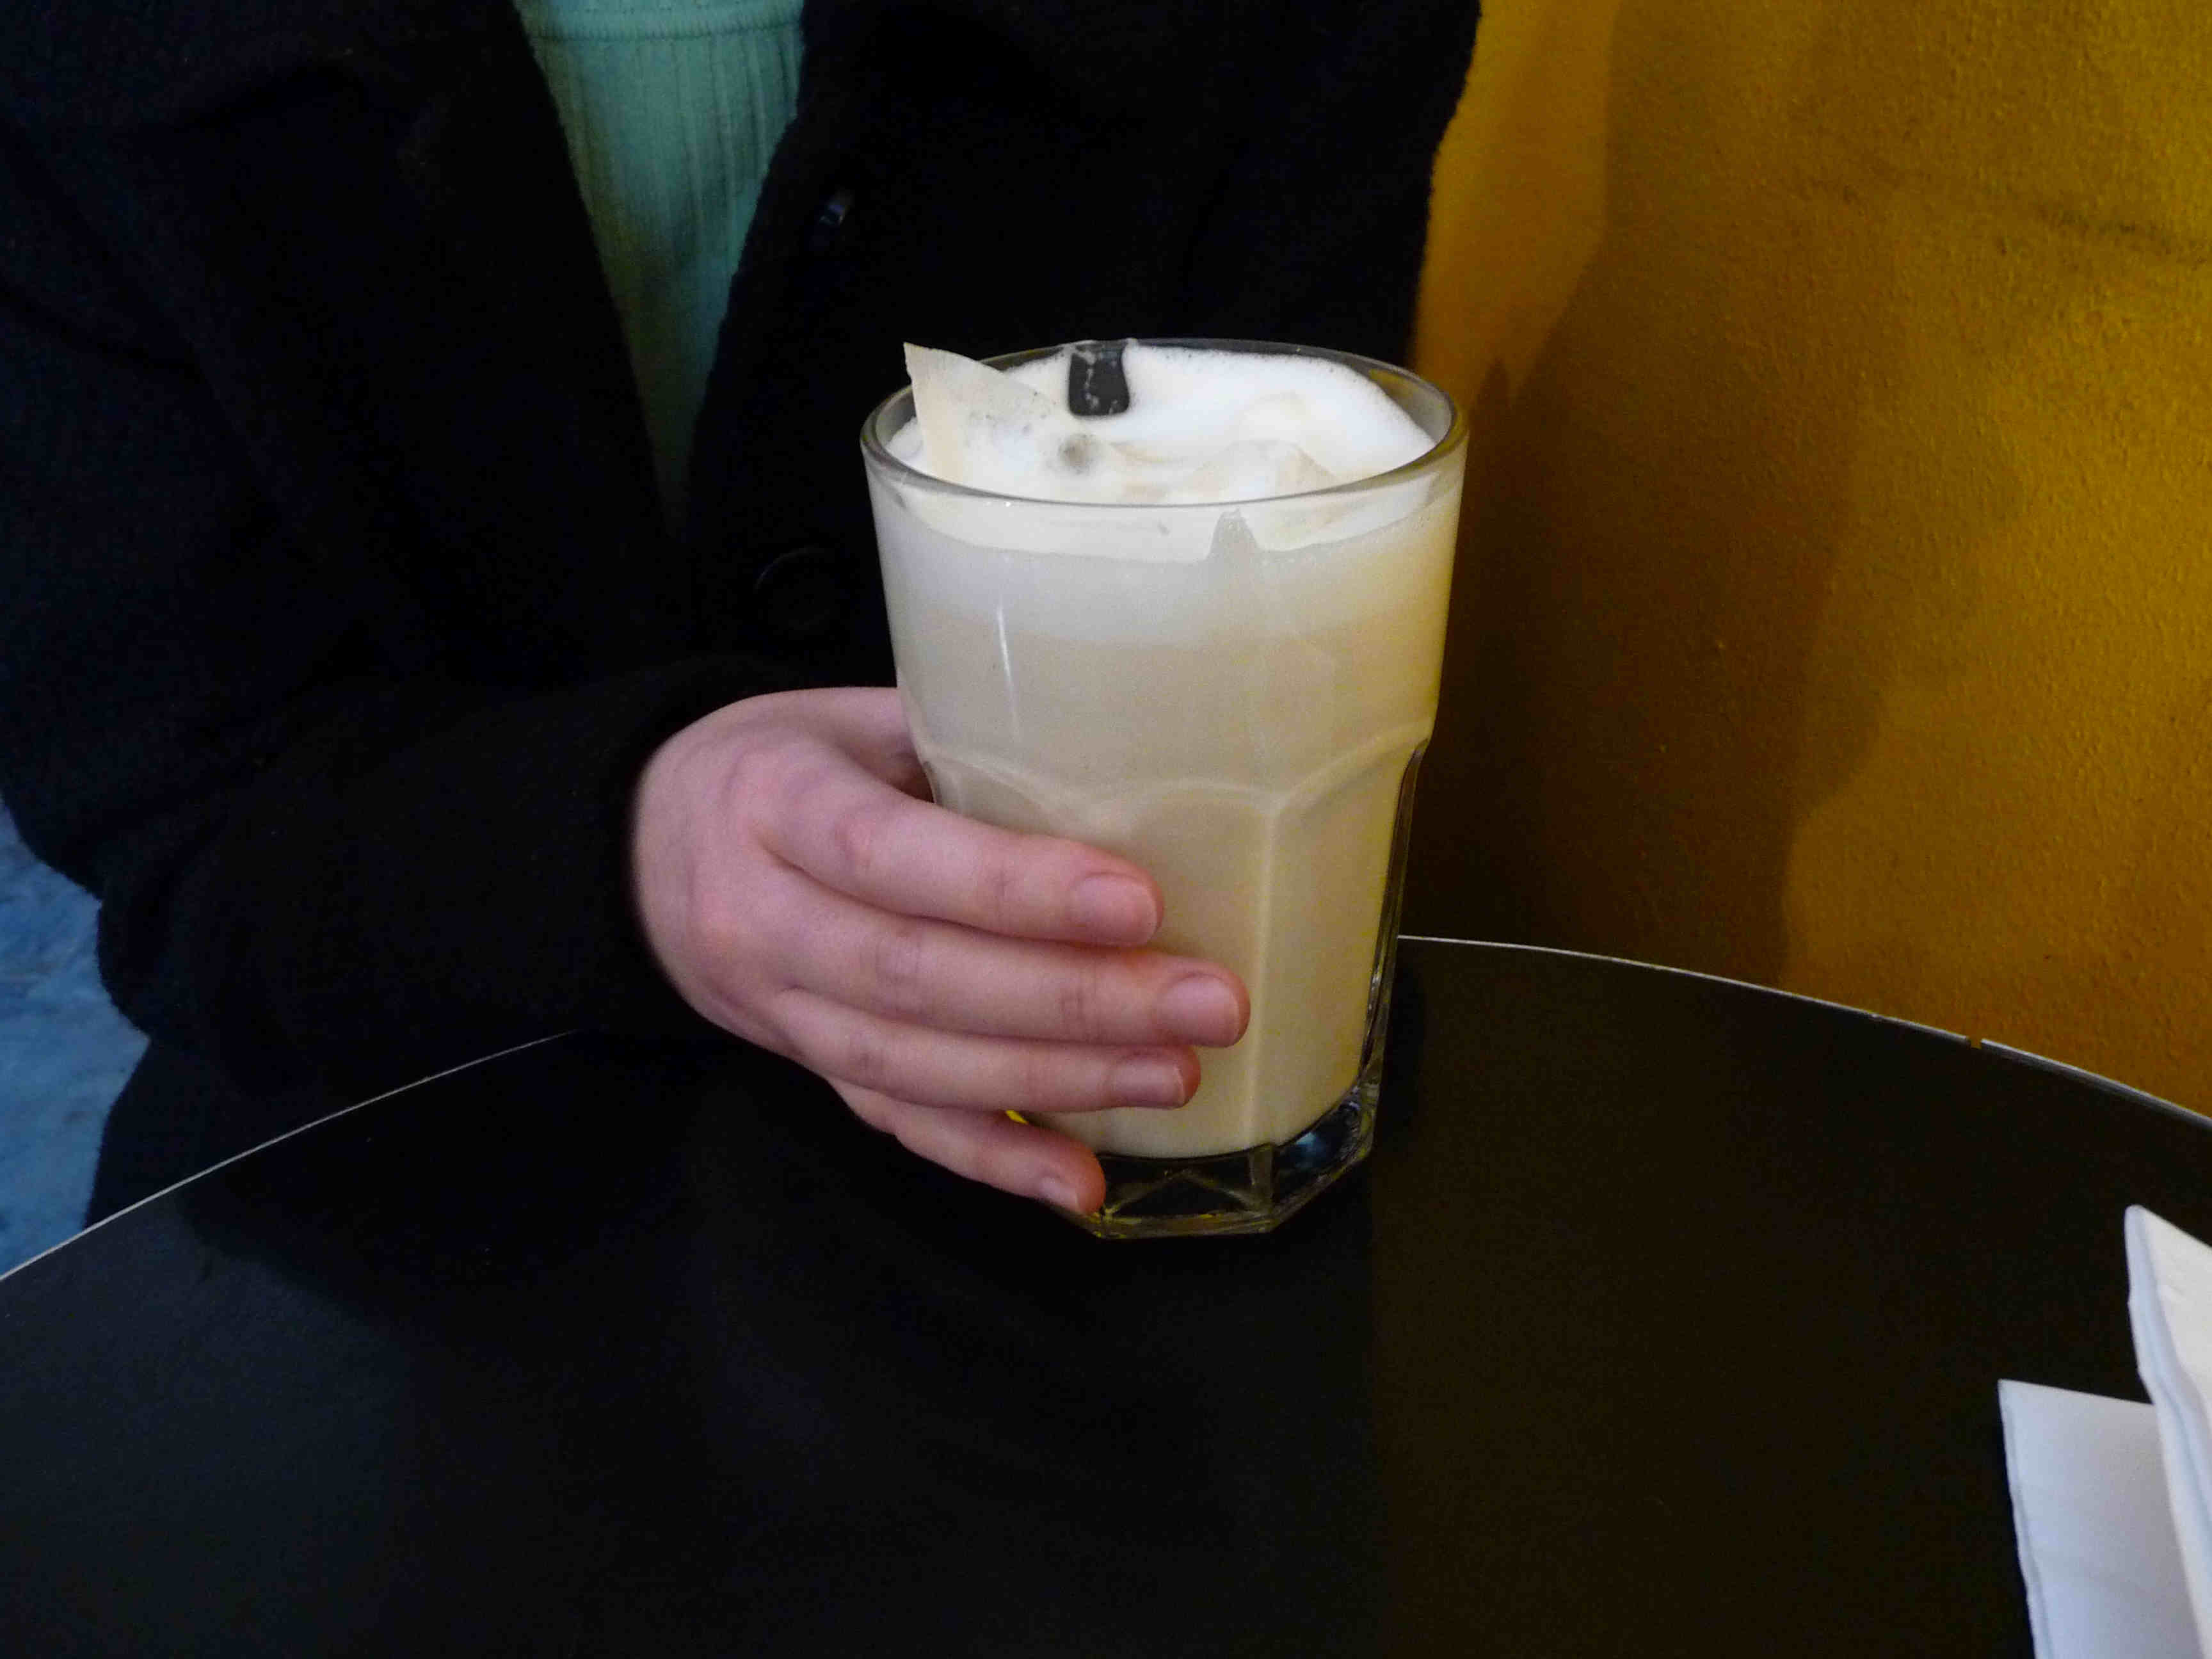 The Chai latte; notice the teabags steeping in the milk.